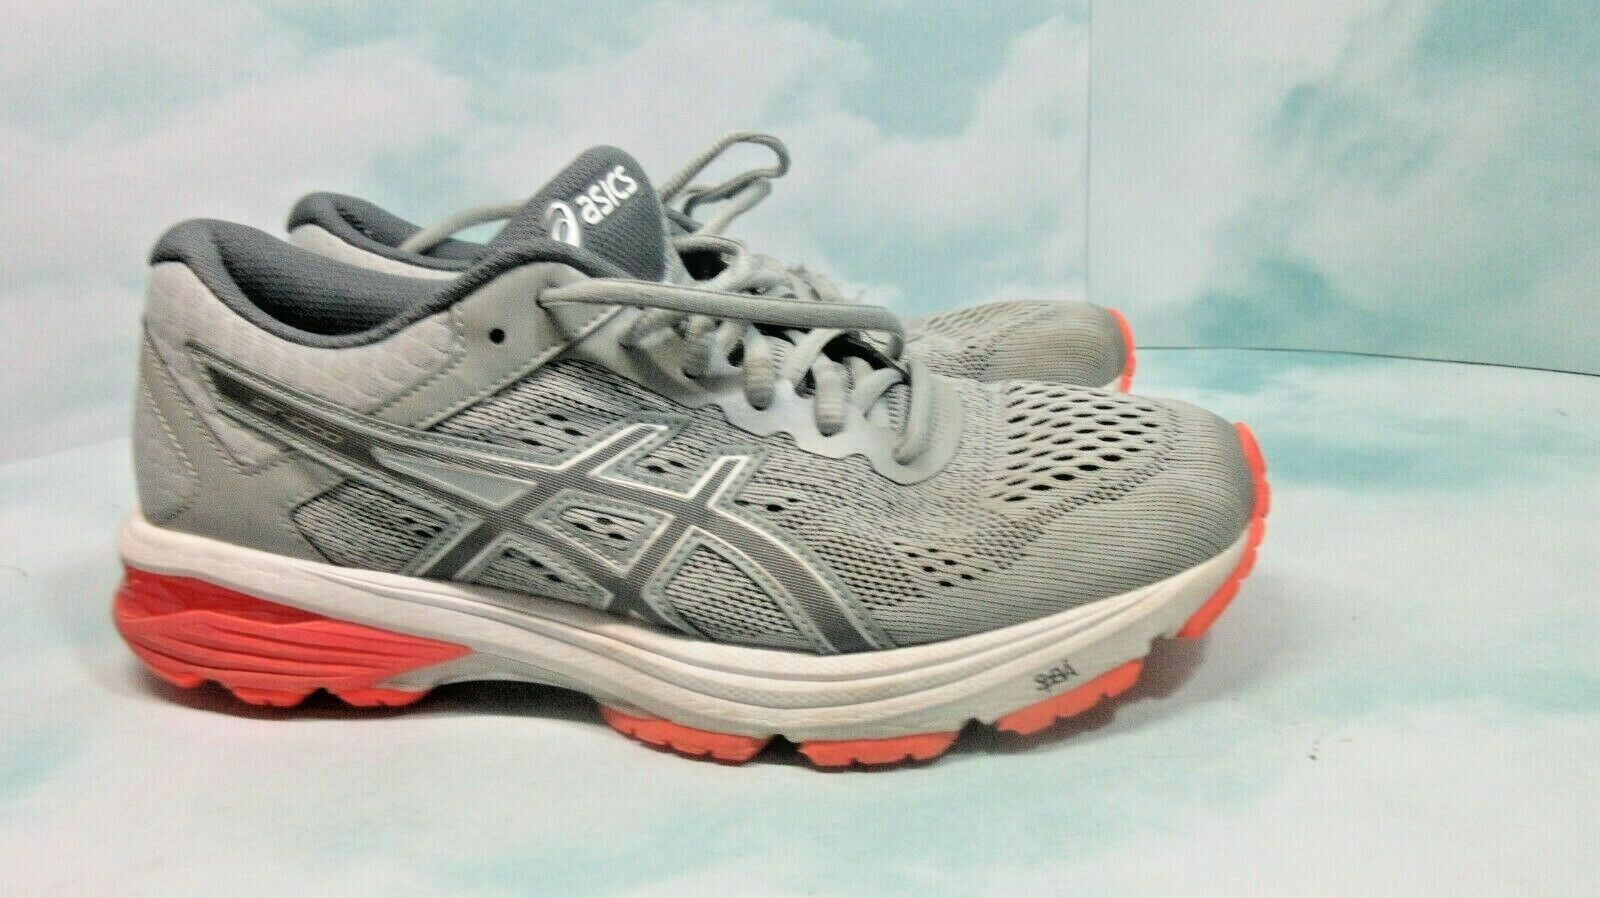 asics running shoes clearance india mens off 50% www